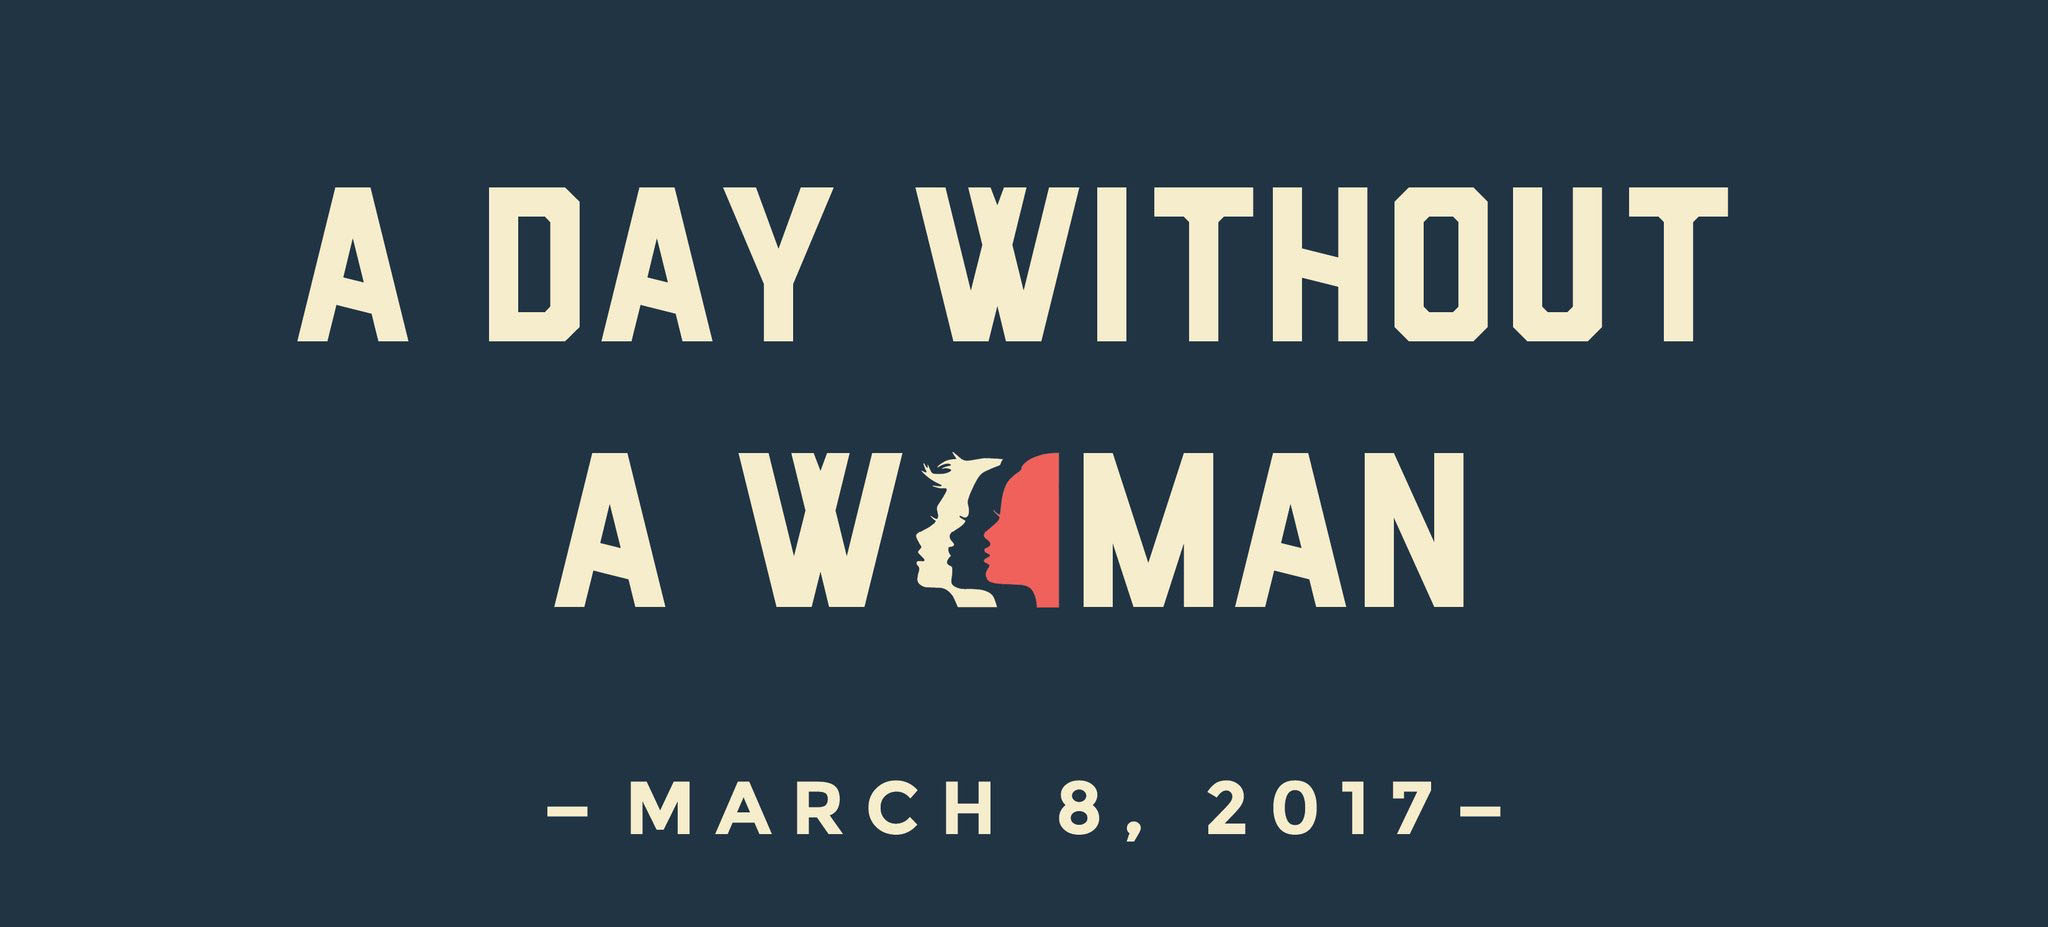 International Women's Day & A Day Without A Woman